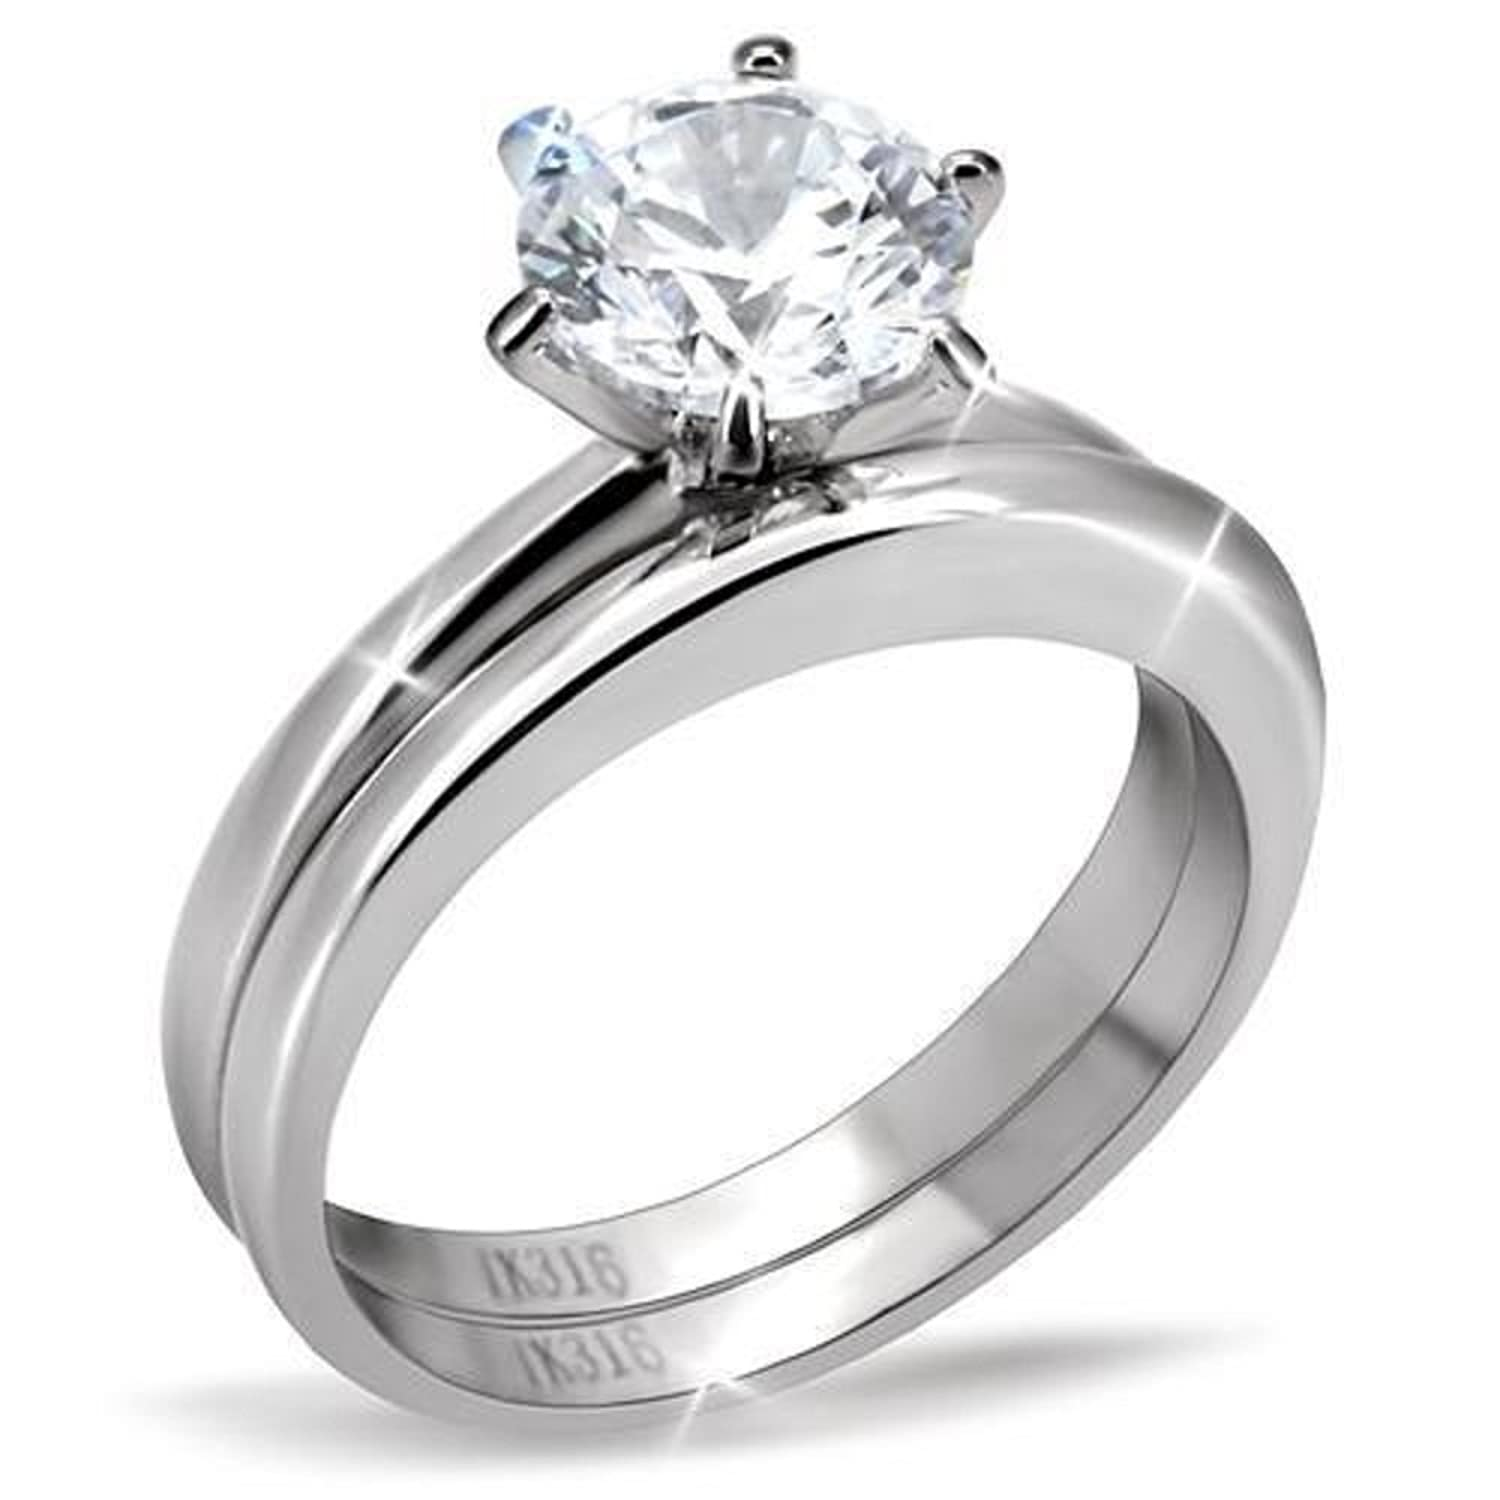 rings does ring de what solitaire mean design perfect wedding diamond blog mystified engagement